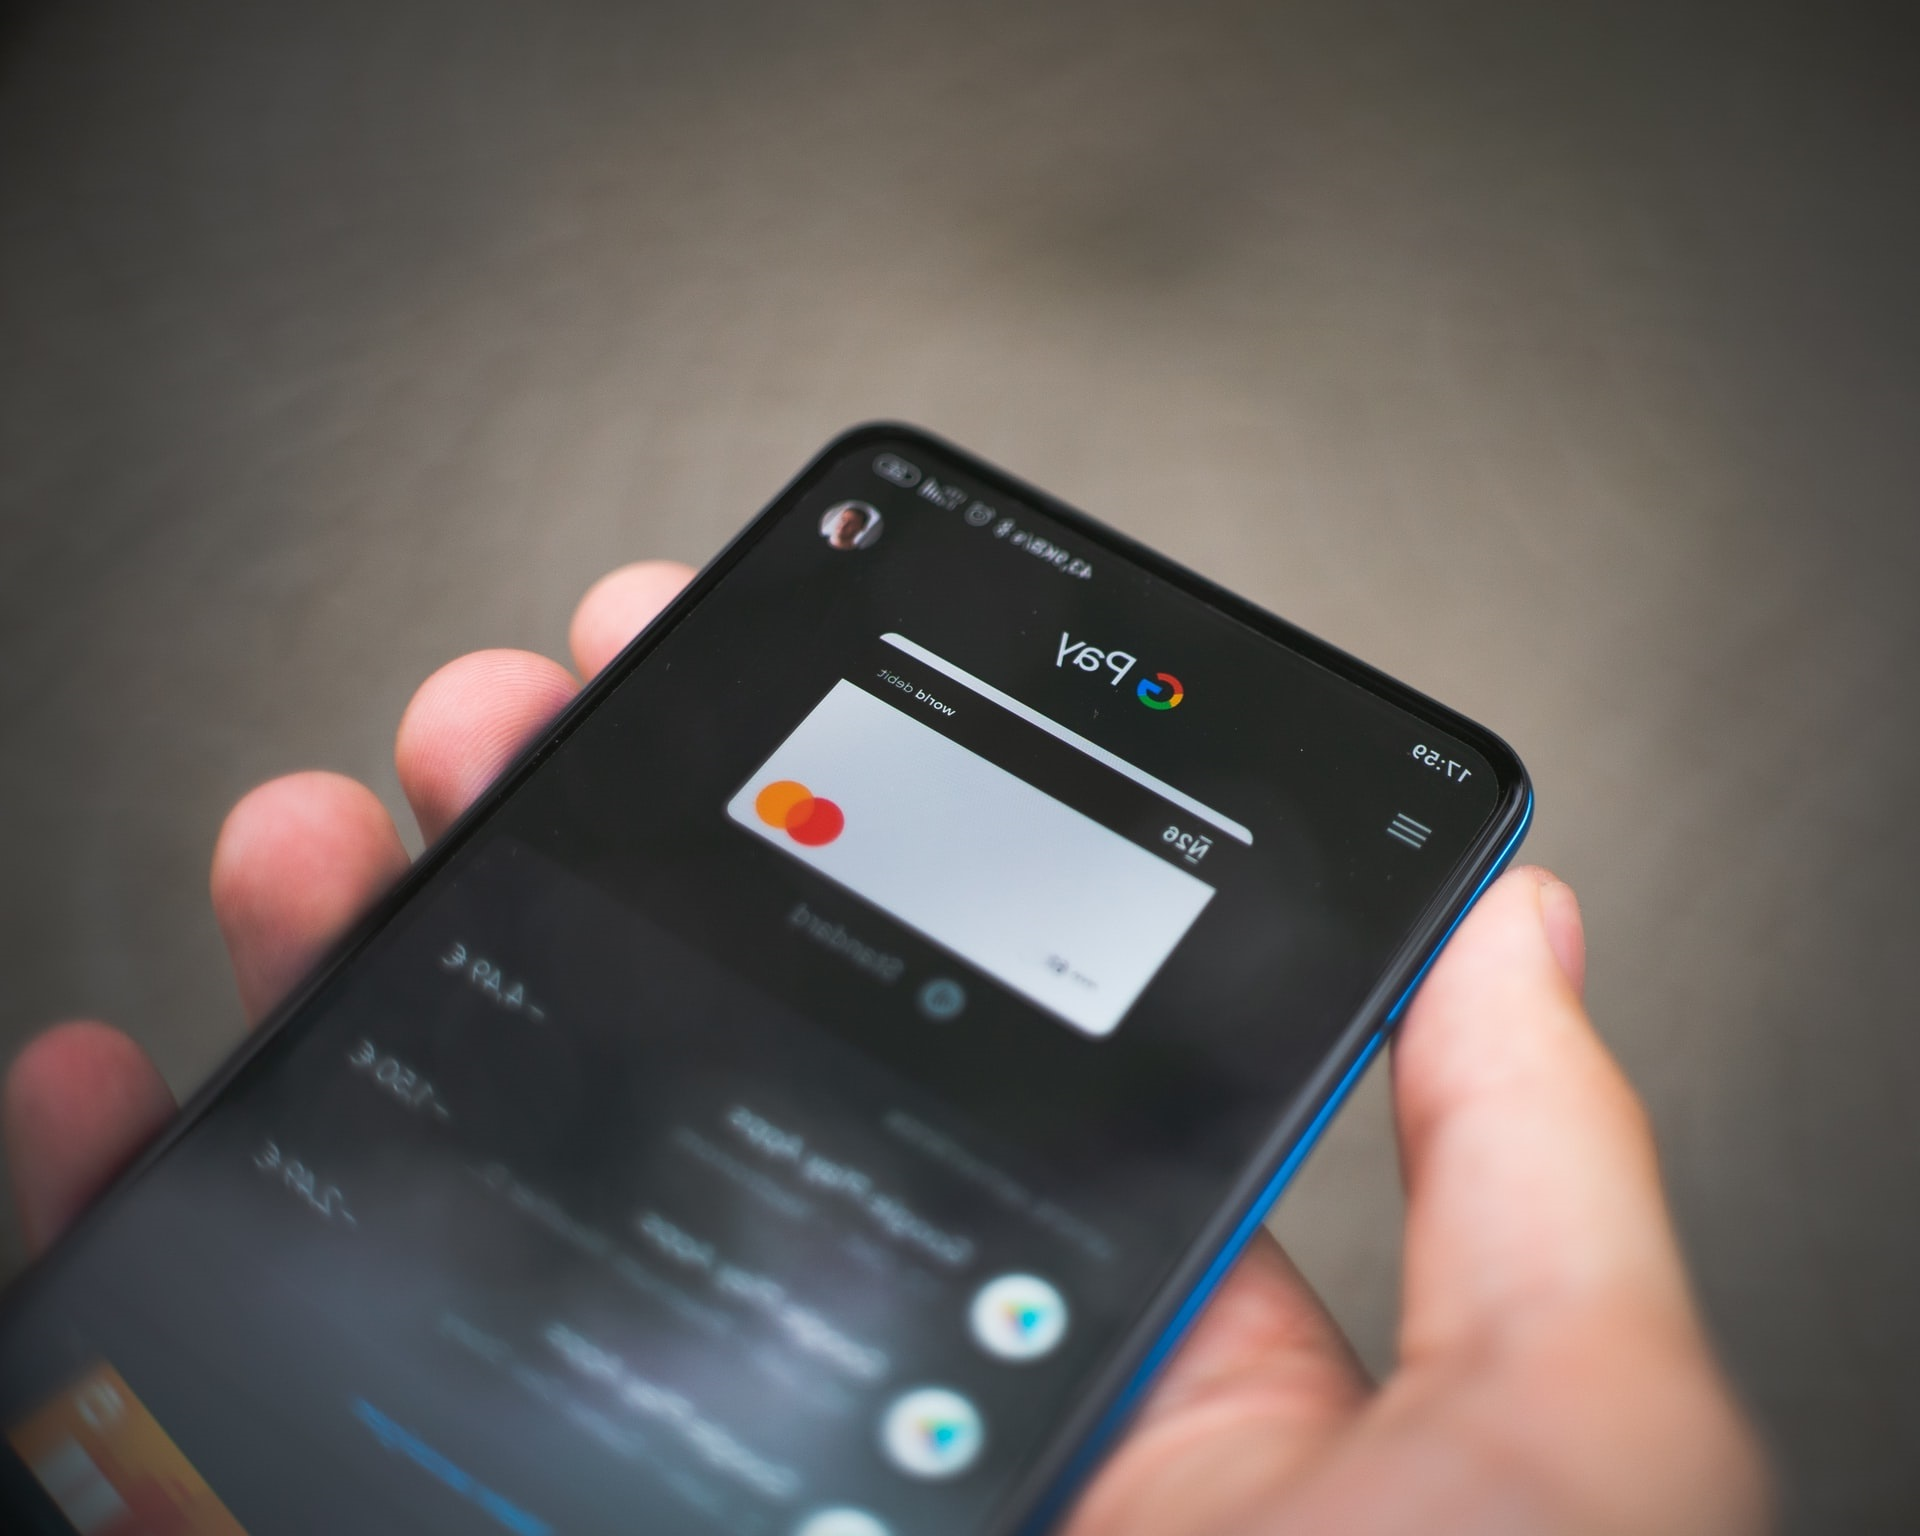 Paiement sans contact Smartphone Google Pay